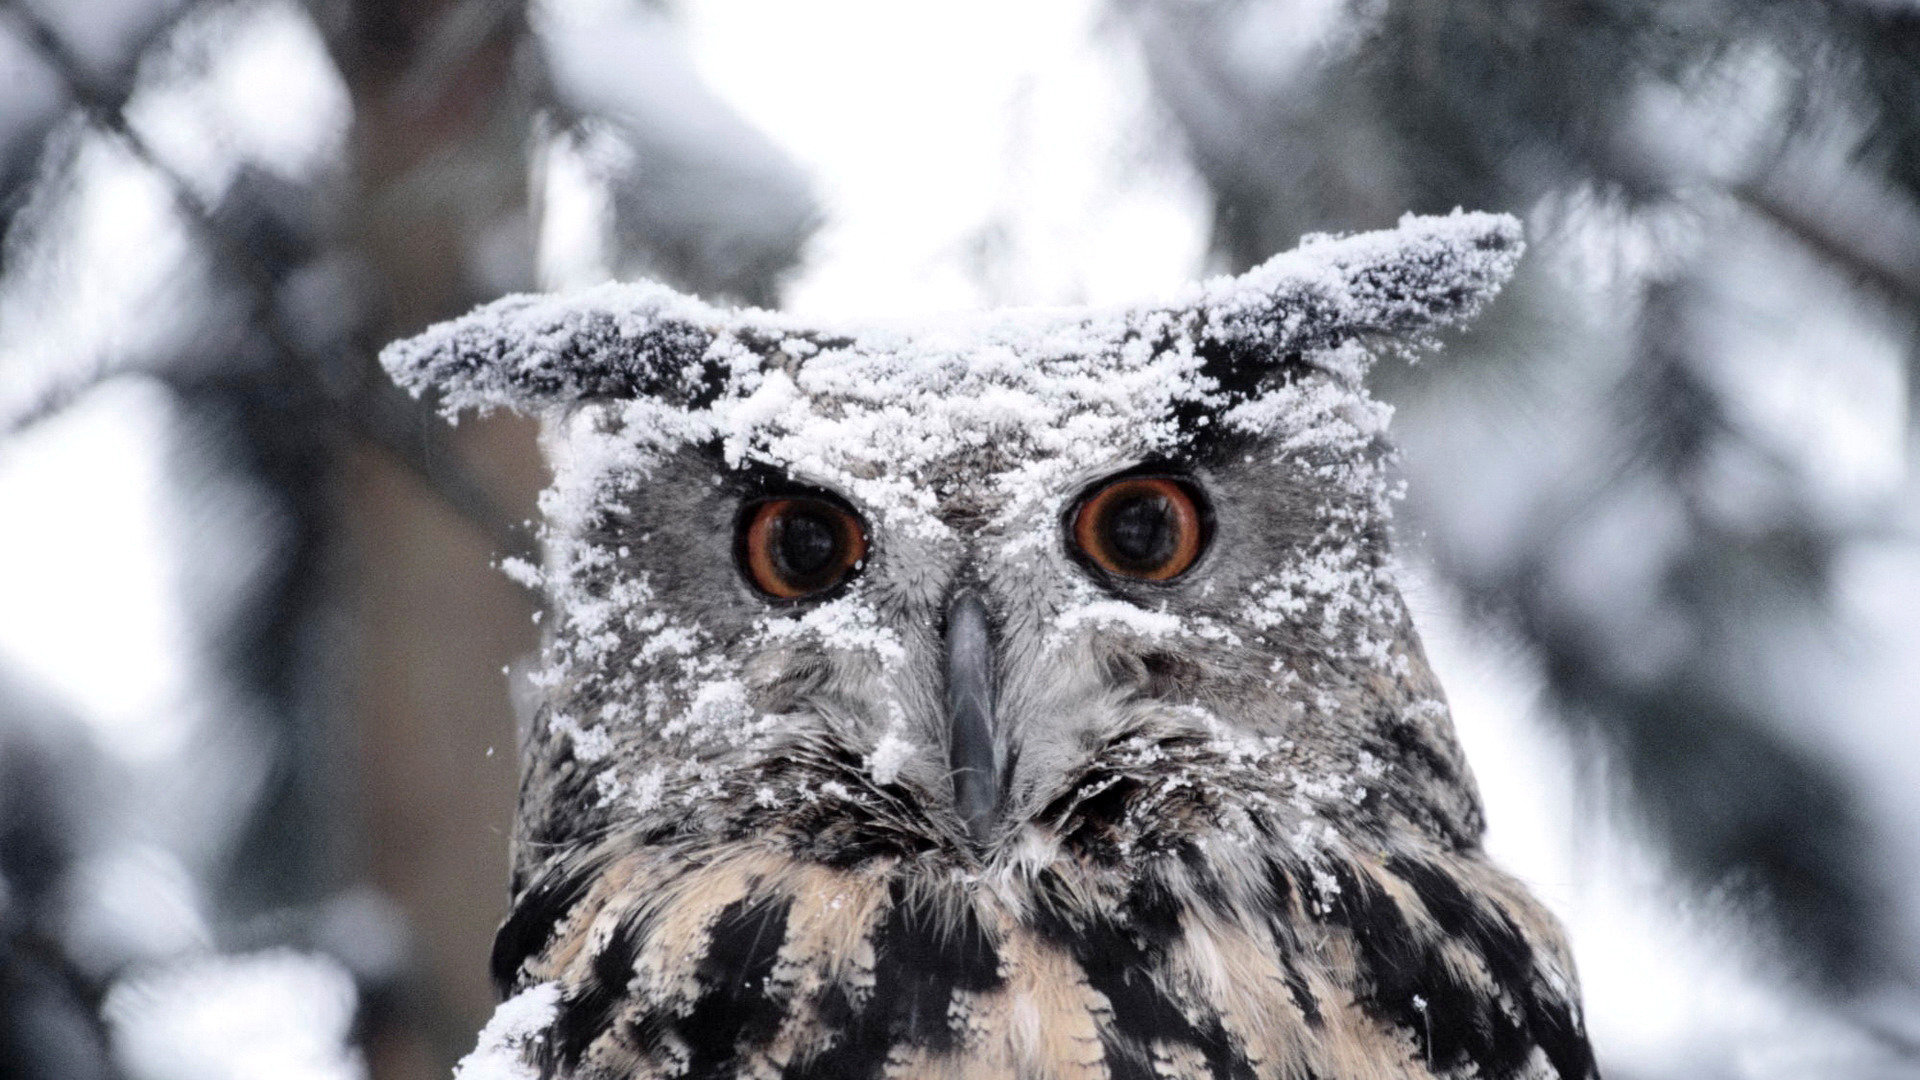 High resolution Great Horned Owl full hd 1920x1080 wallpaper ID:297787 for computer